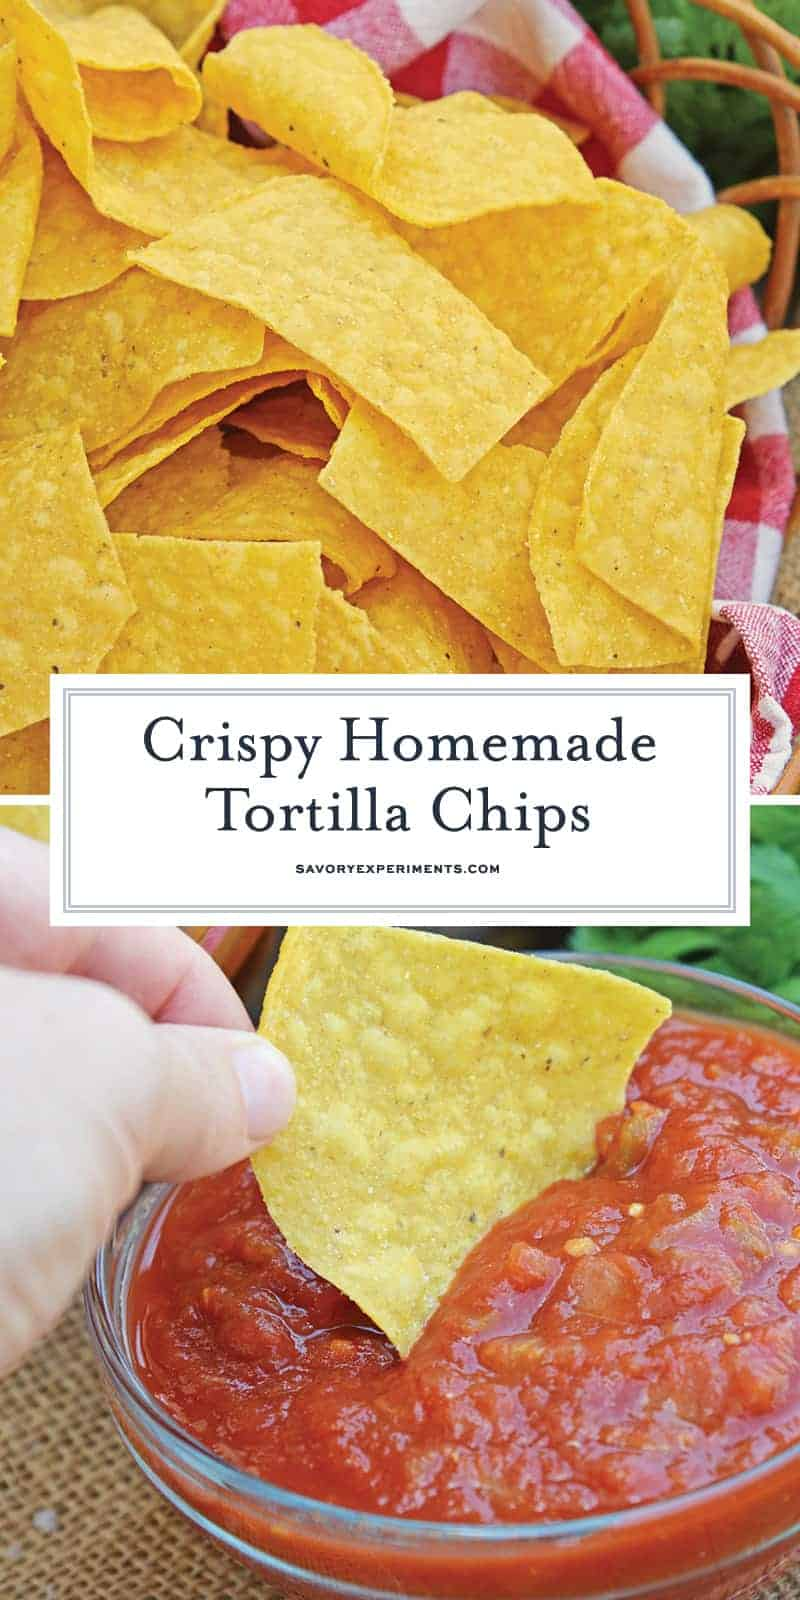 Homemade Tortilla Chips - Use your leftover corn tortillas to make homemade tortilla chips. Super crunchy, serve with salsa, dips or as a snack. www.savoryexperiments.com